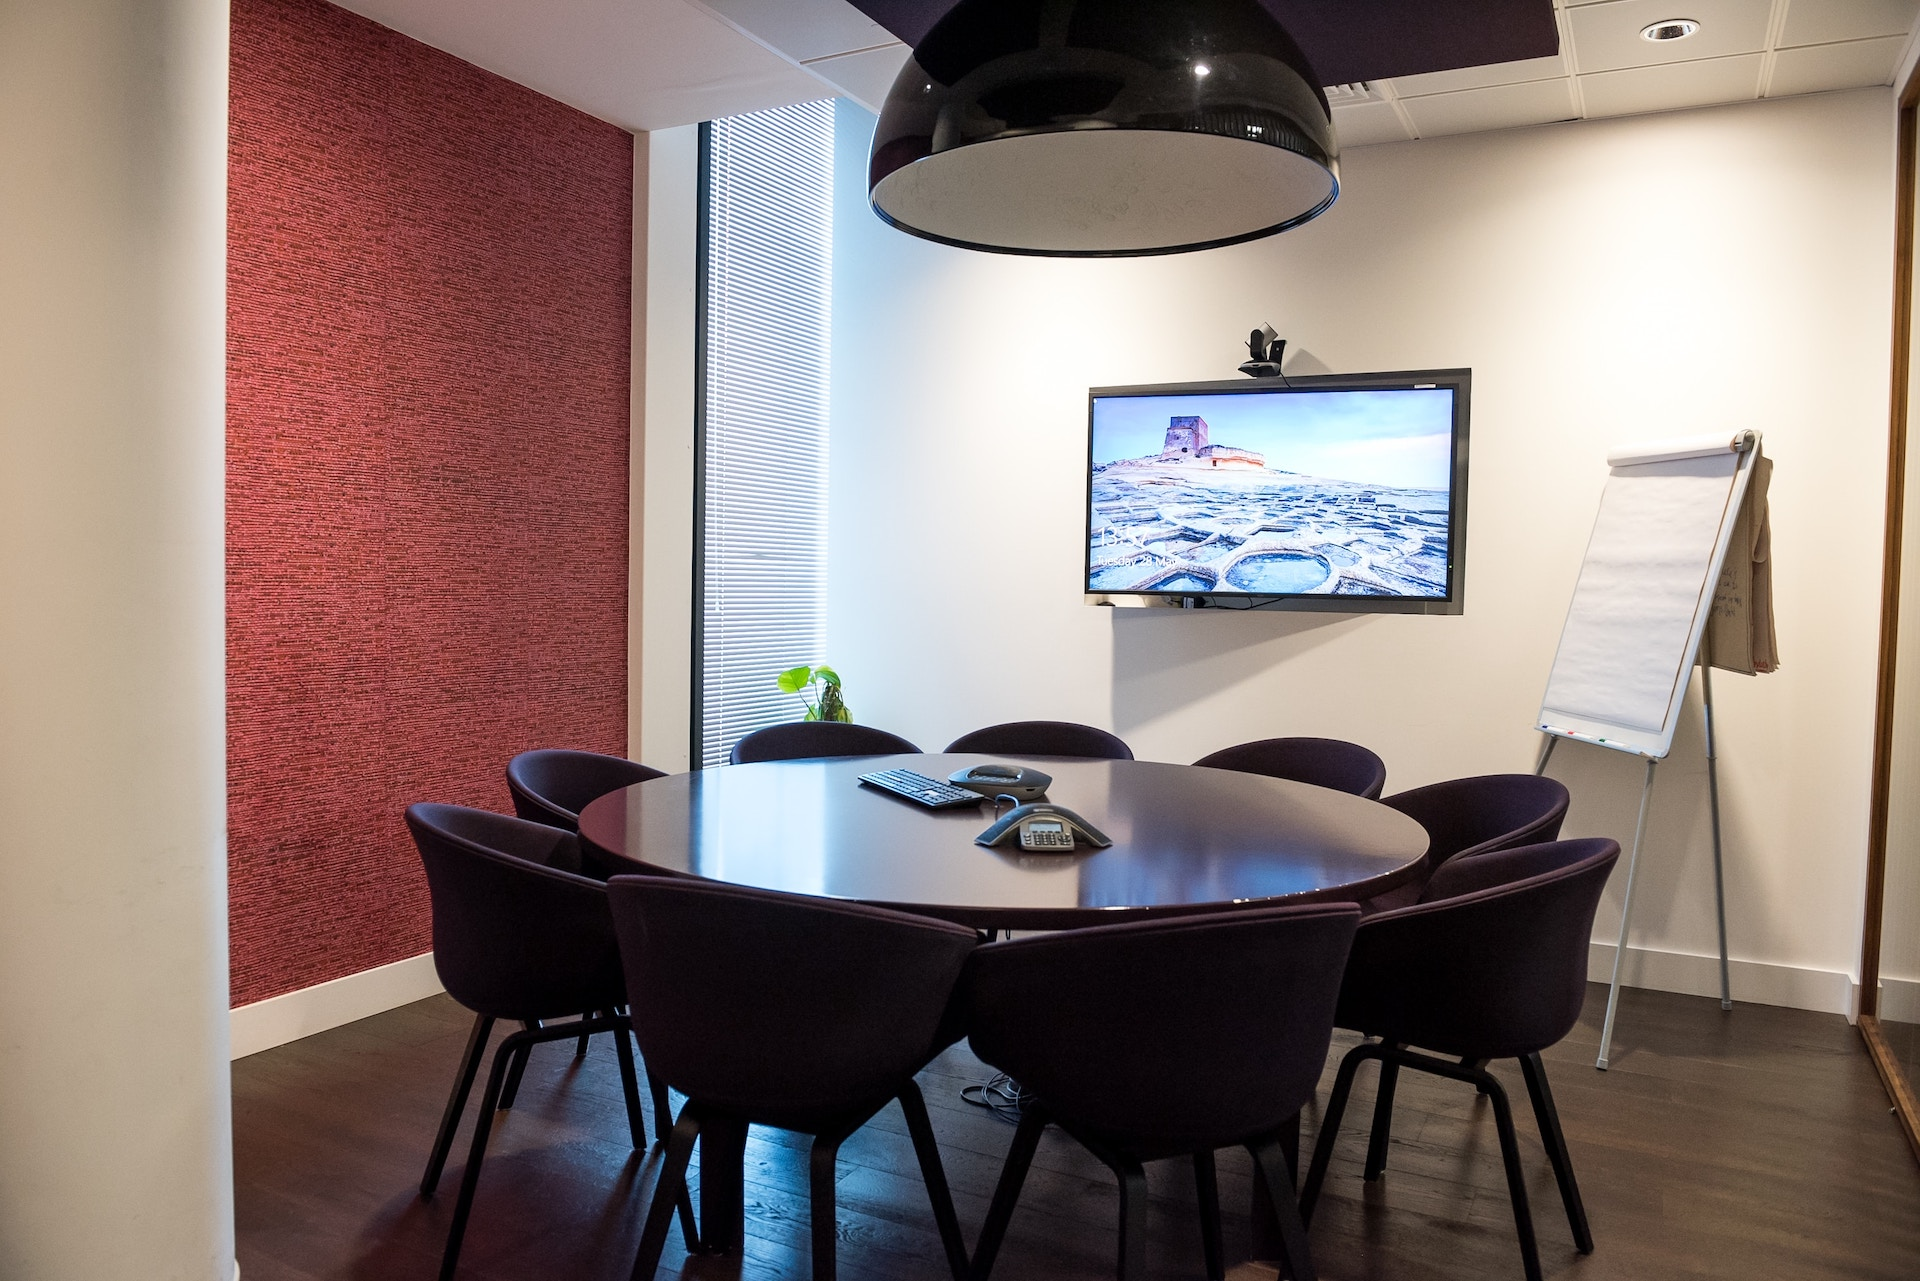 Shaping our future - conference rooms and meeting room booking / YAROOMS